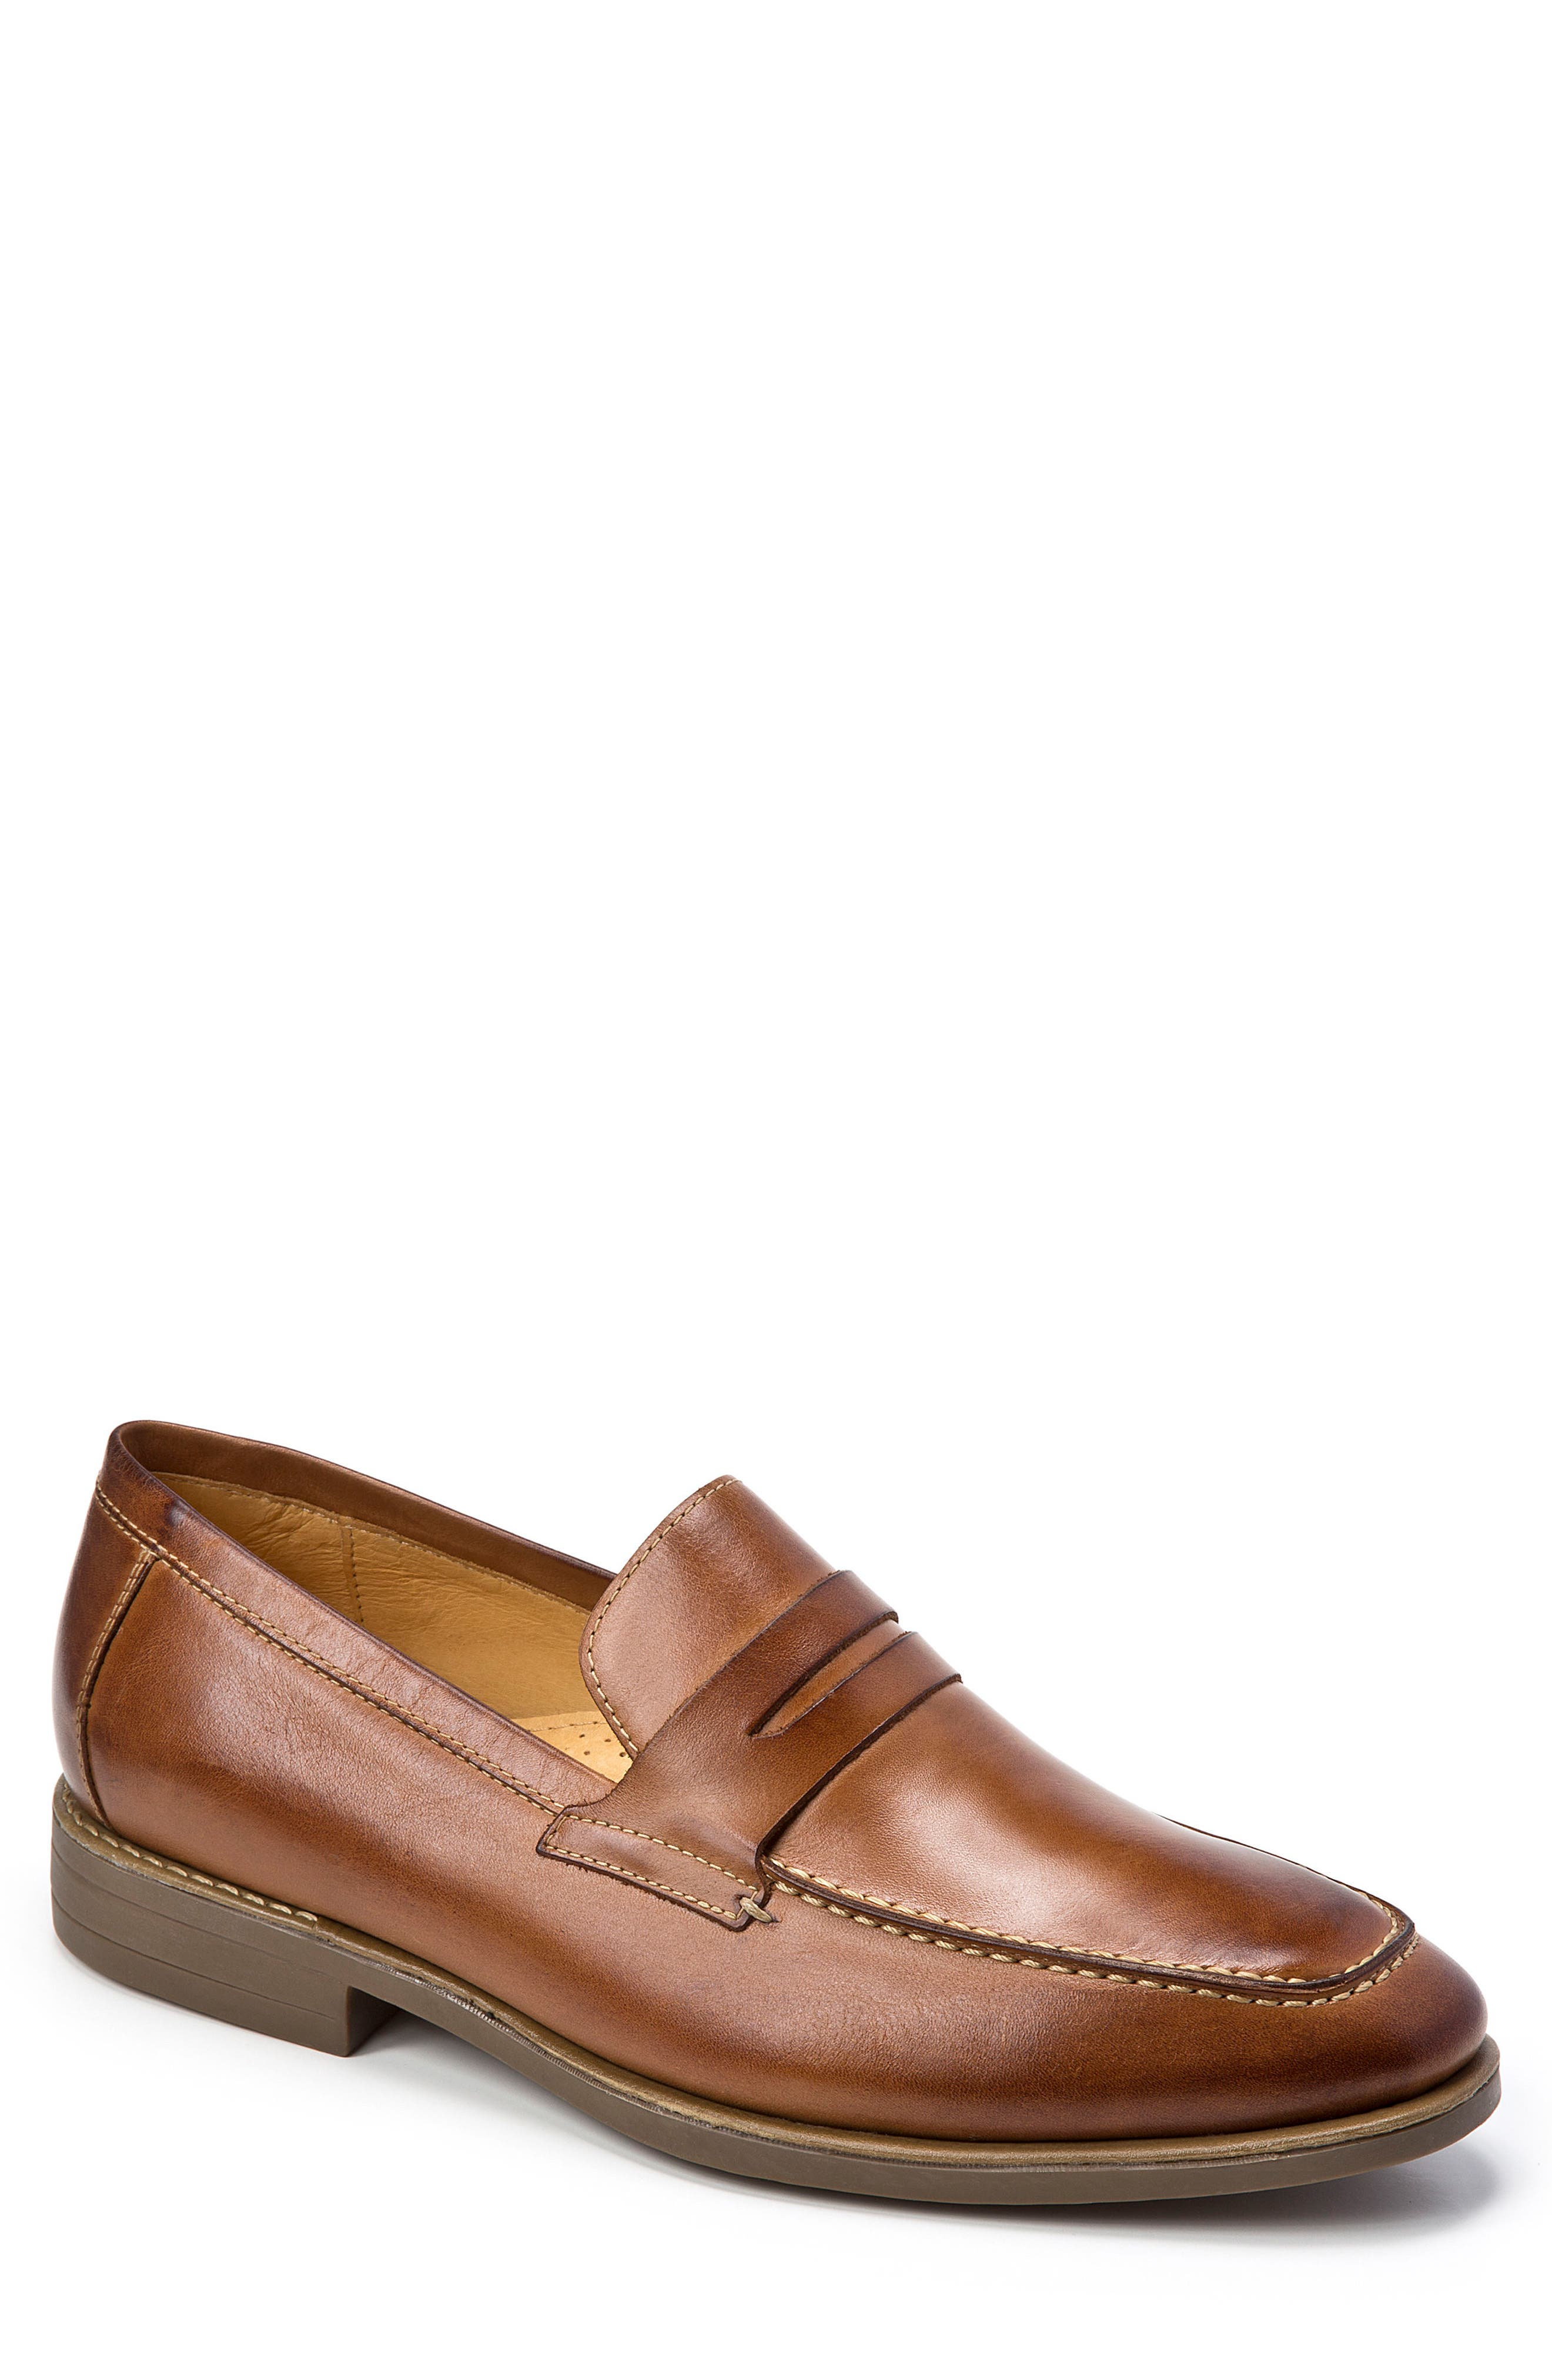 Murray Penny Loafer,                         Main,                         color, TAN